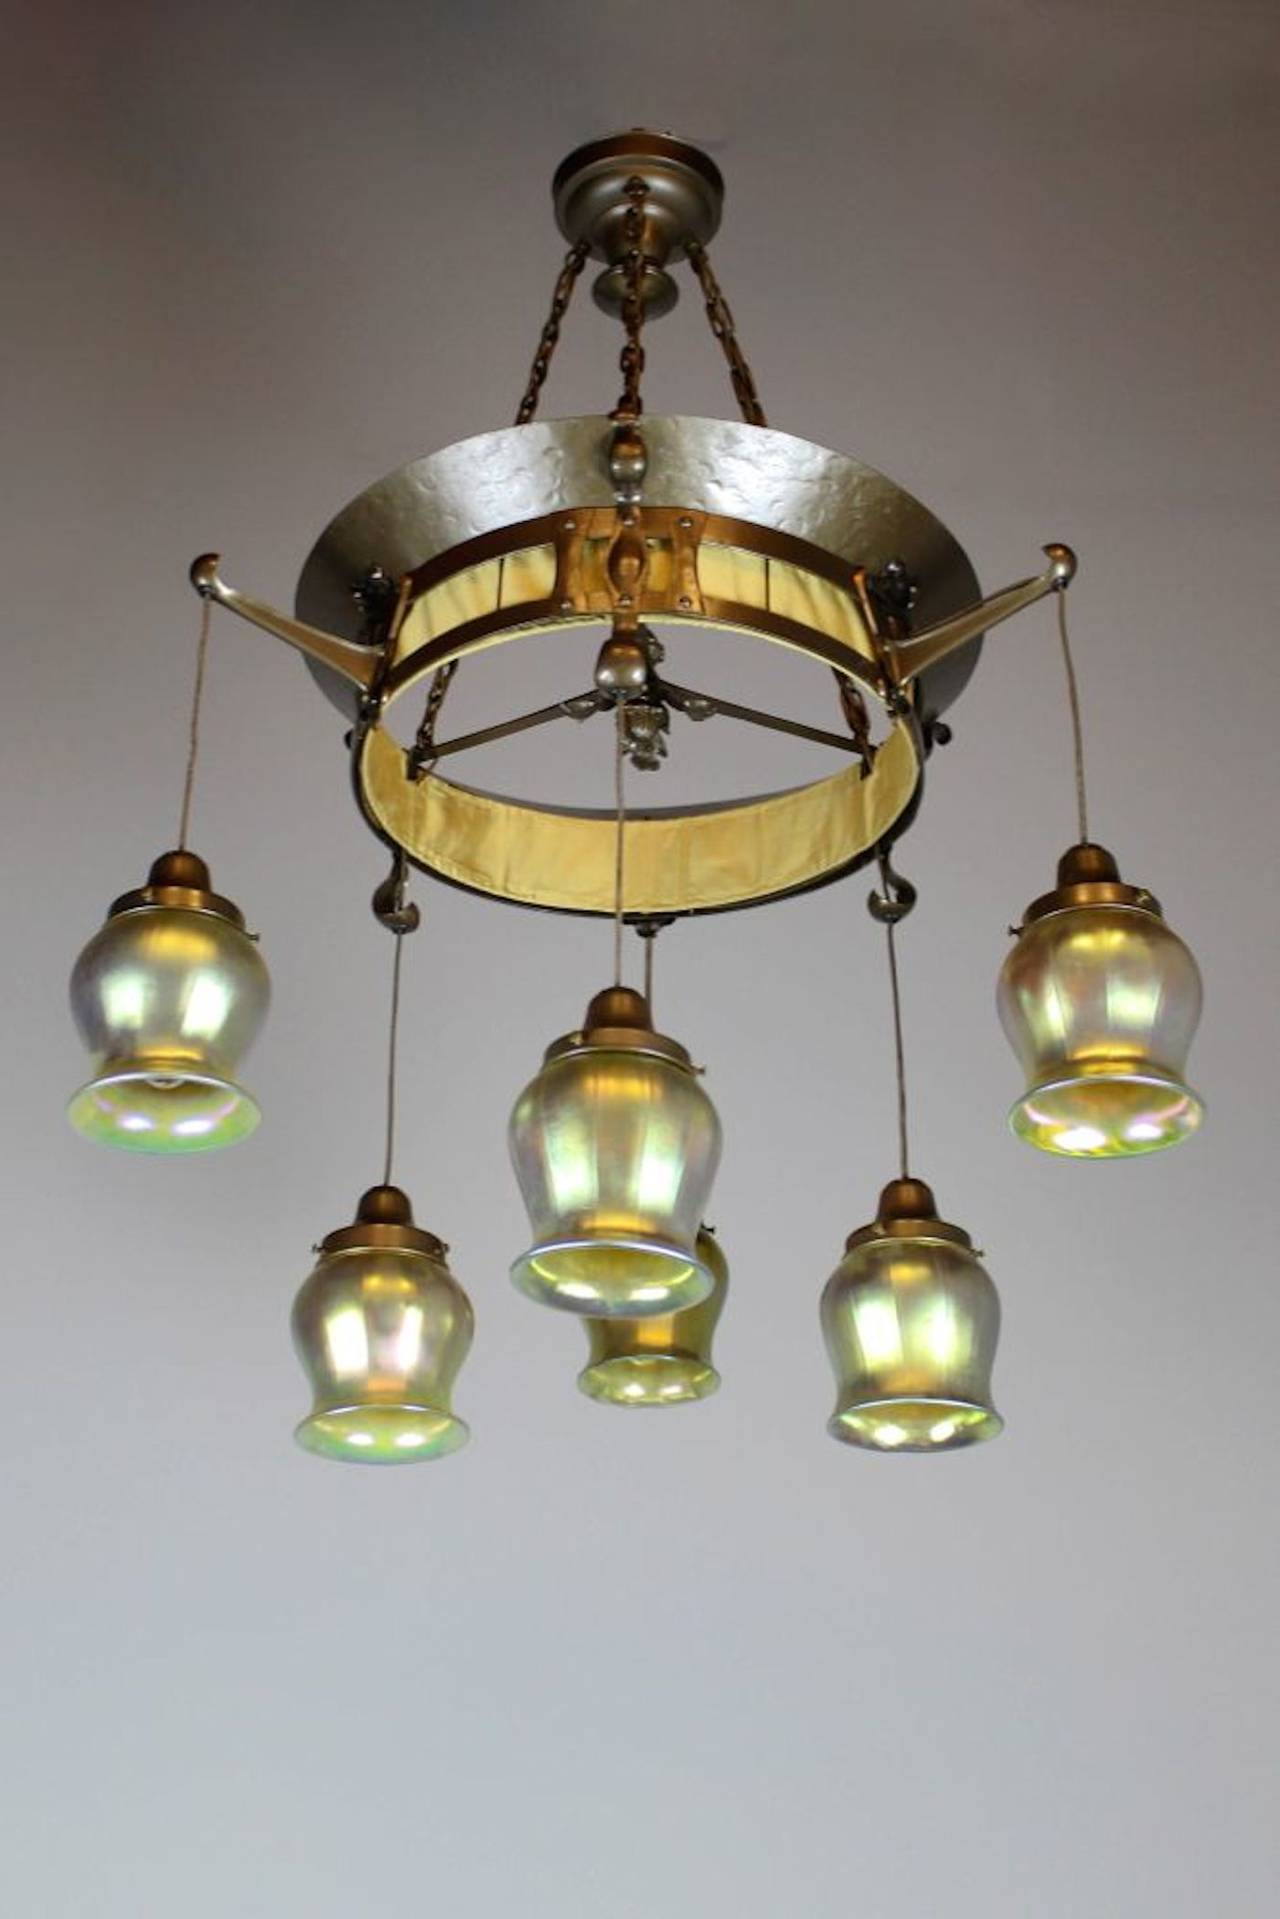 English art nouveau six light fixture at 1stdibs for Art nouveau lighting fixtures